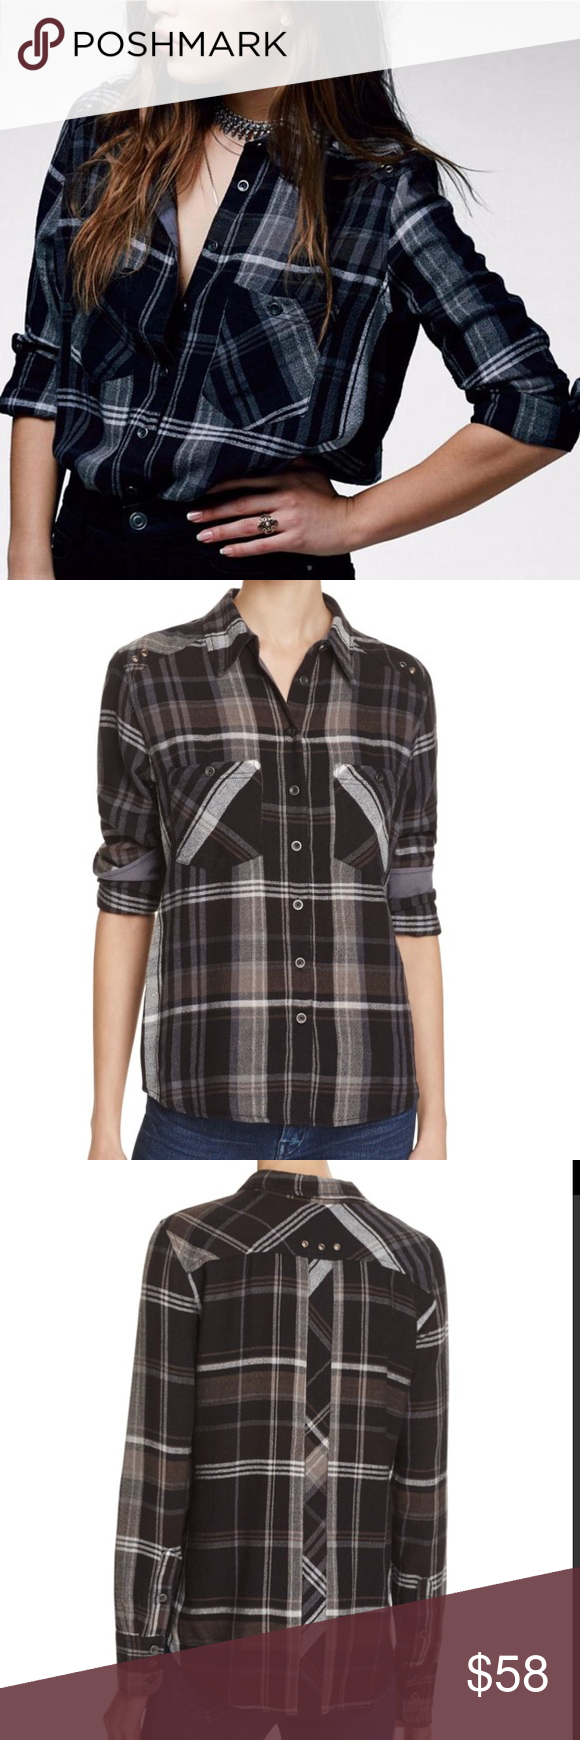 Button up flannel shirts  NWT Free People Wesley Plaid Black Button Up Top Boutique  Black